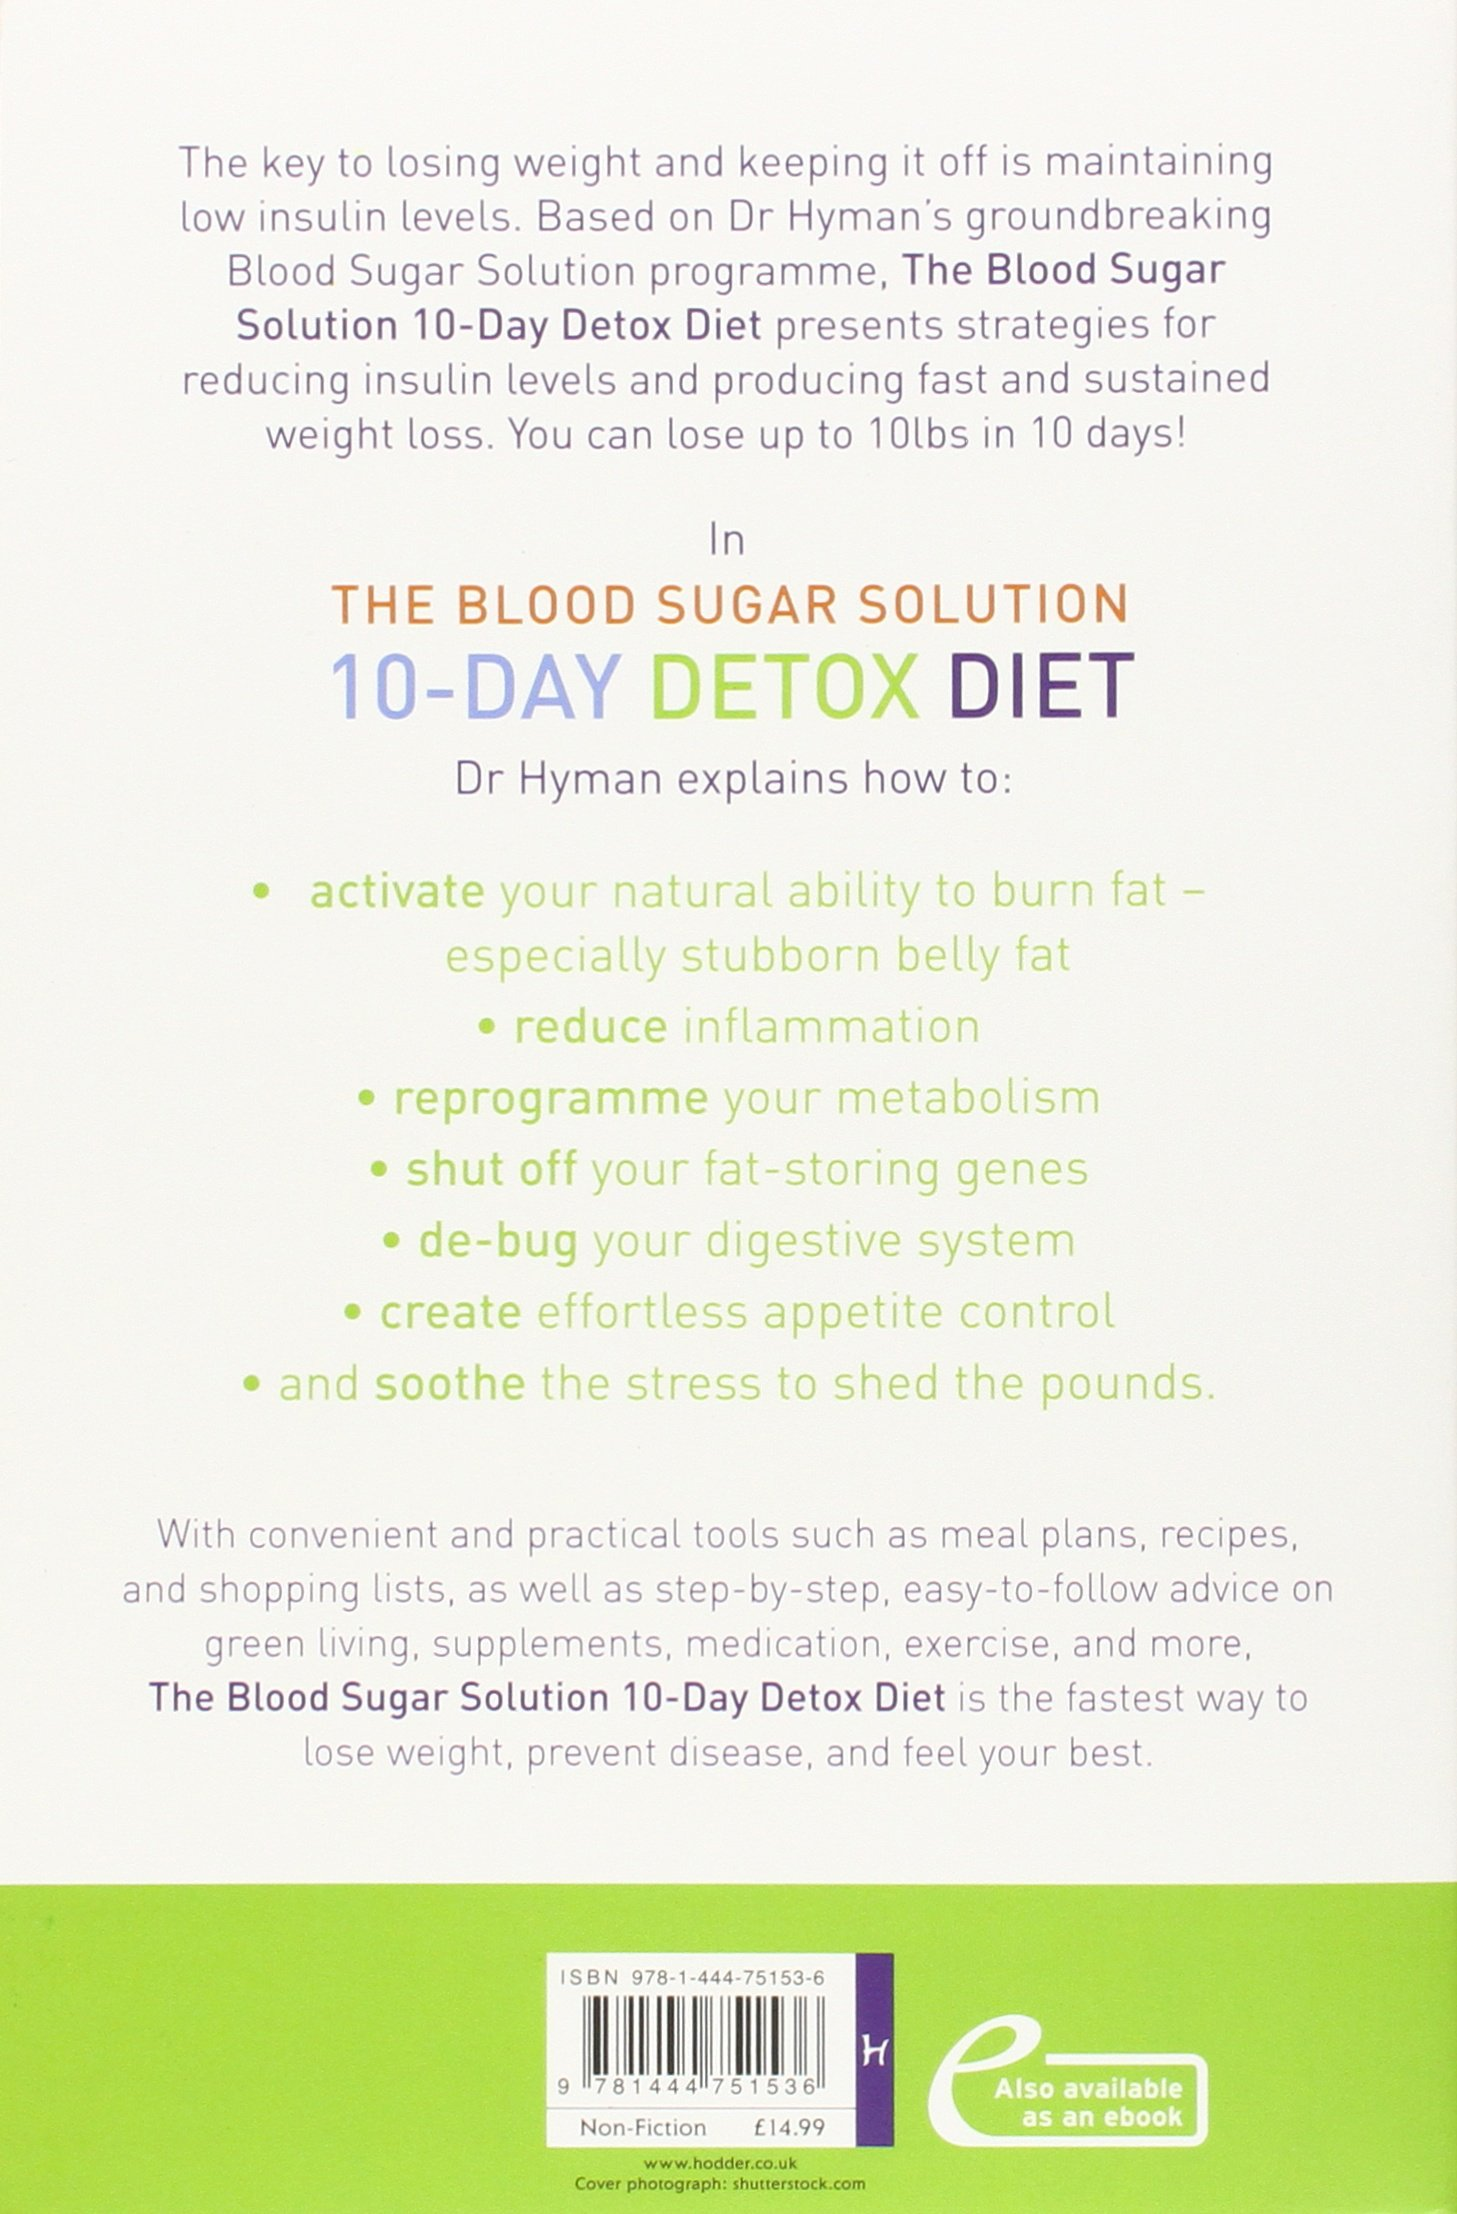 meal plans for 10-day detox diet